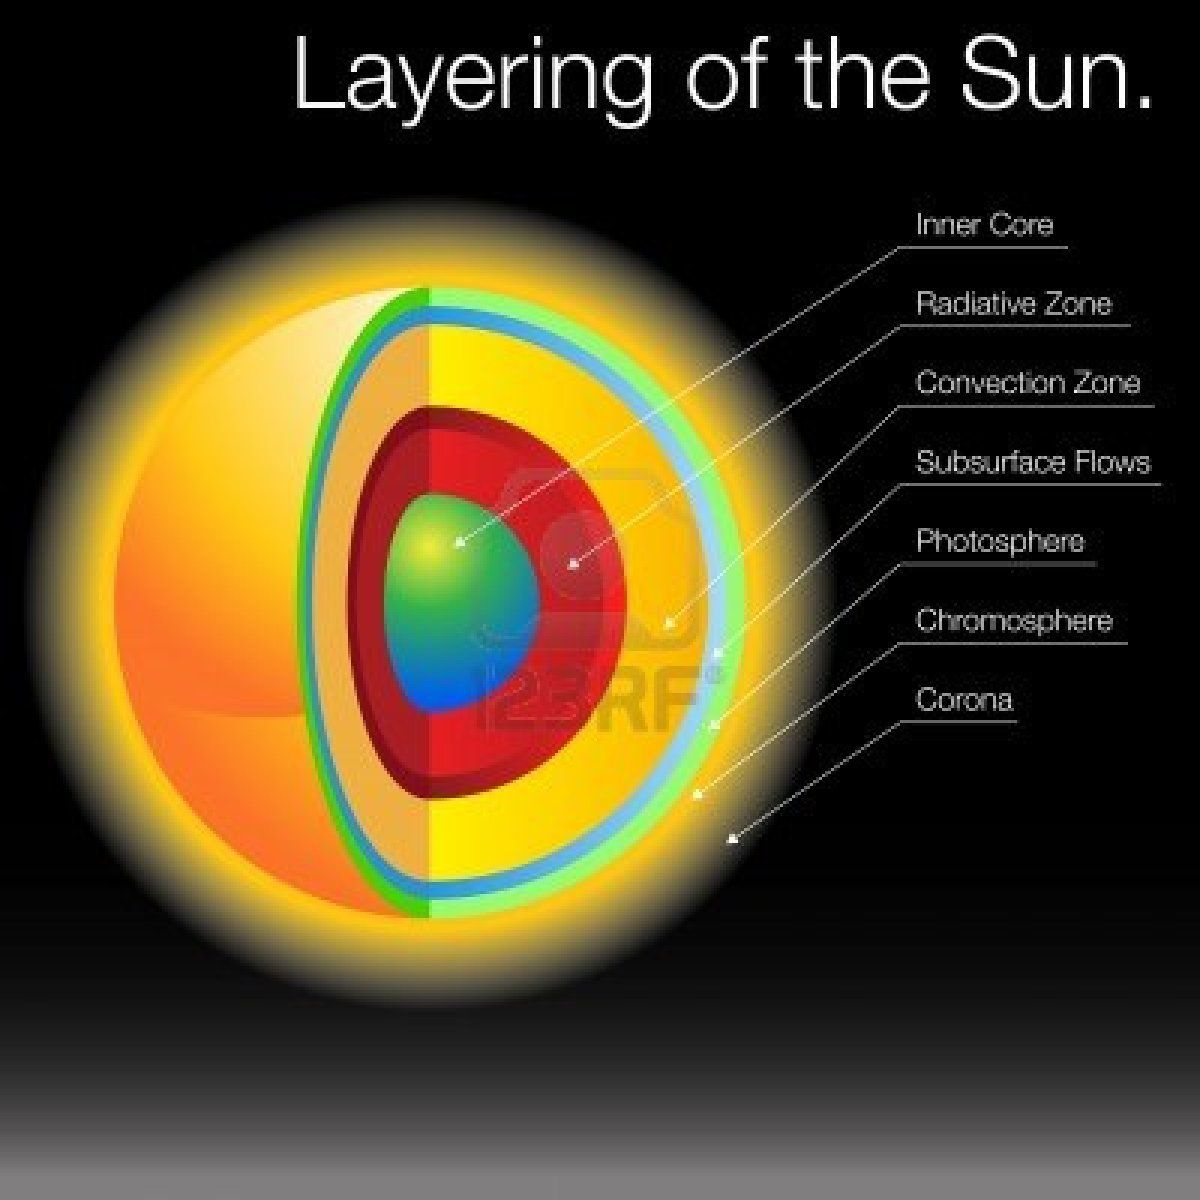 Layers of the Sun layers of the sun diagram – Layers of the Sun Worksheet